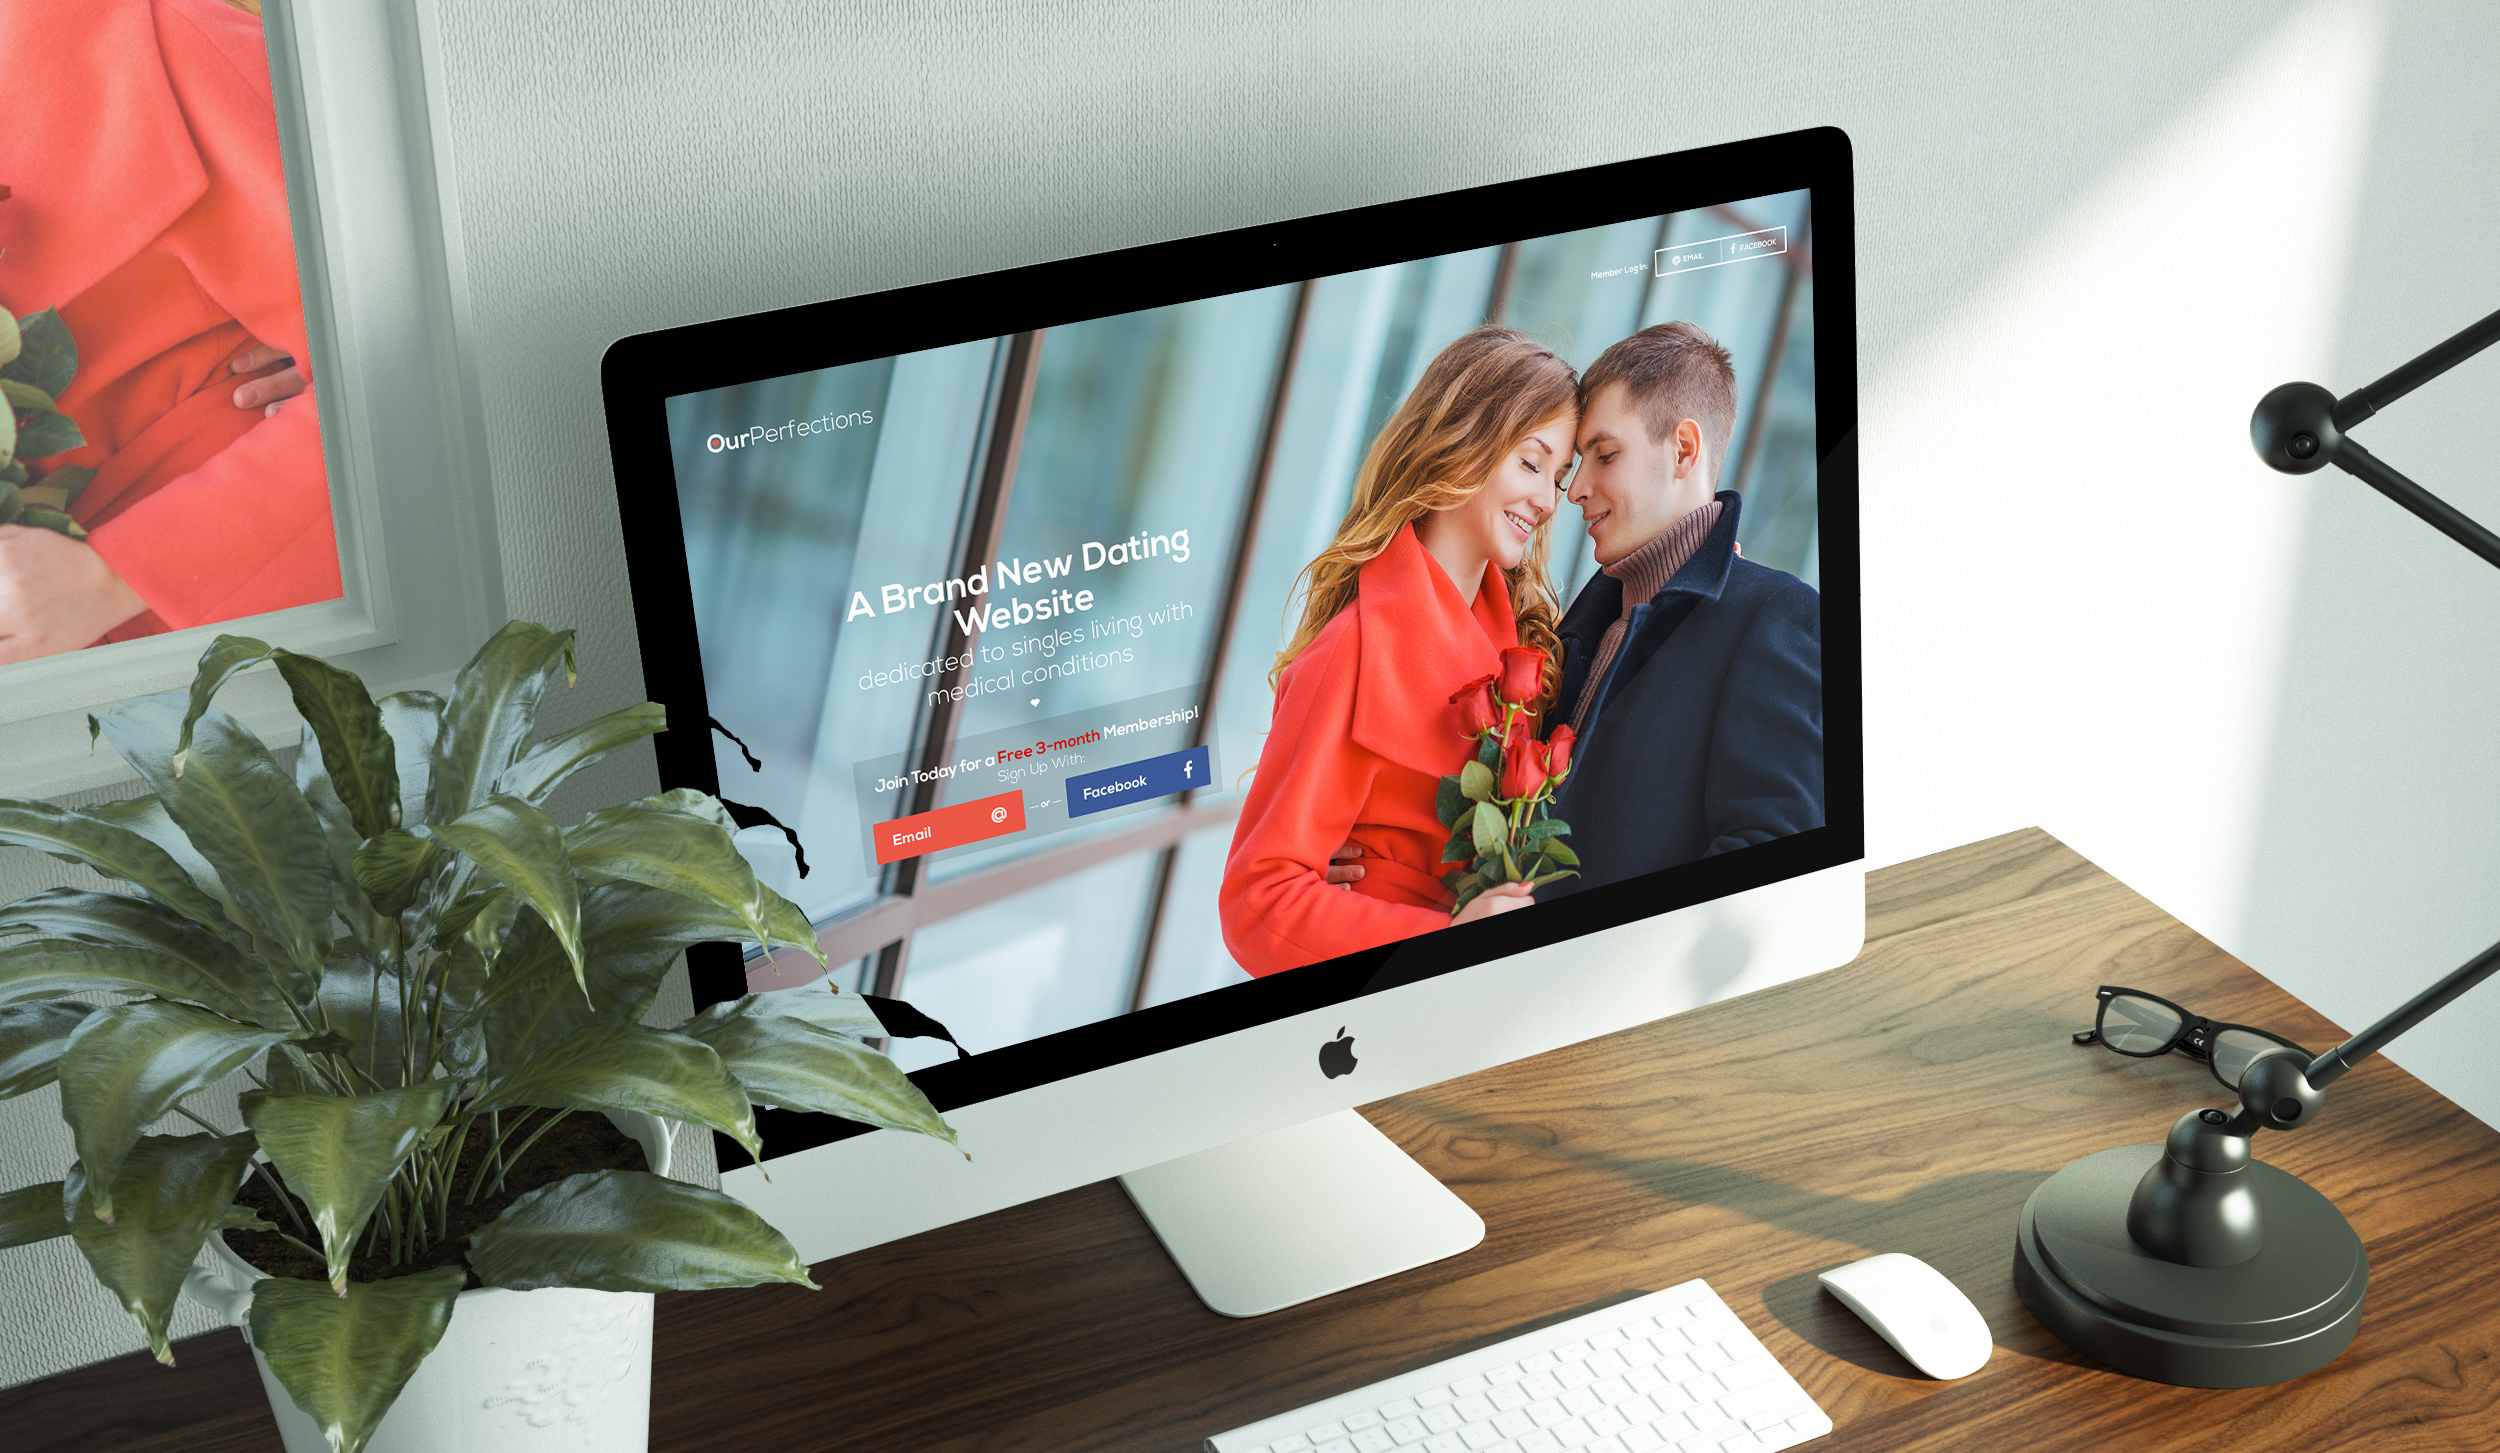 Homepage design for a dating website